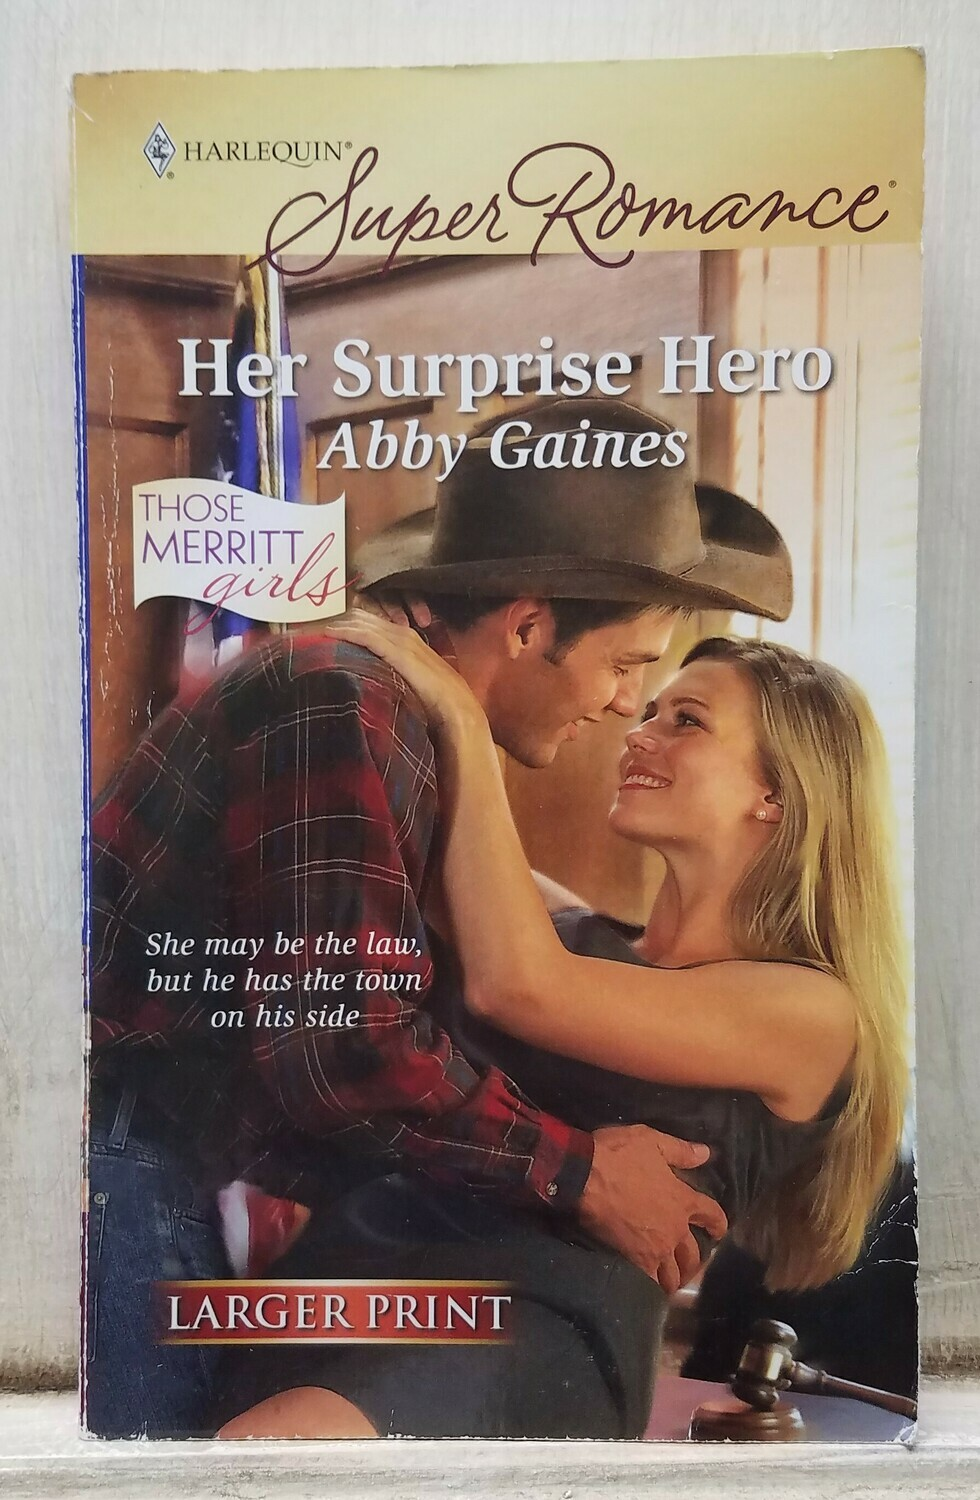 Her Surprise Hero by Abby Gaines